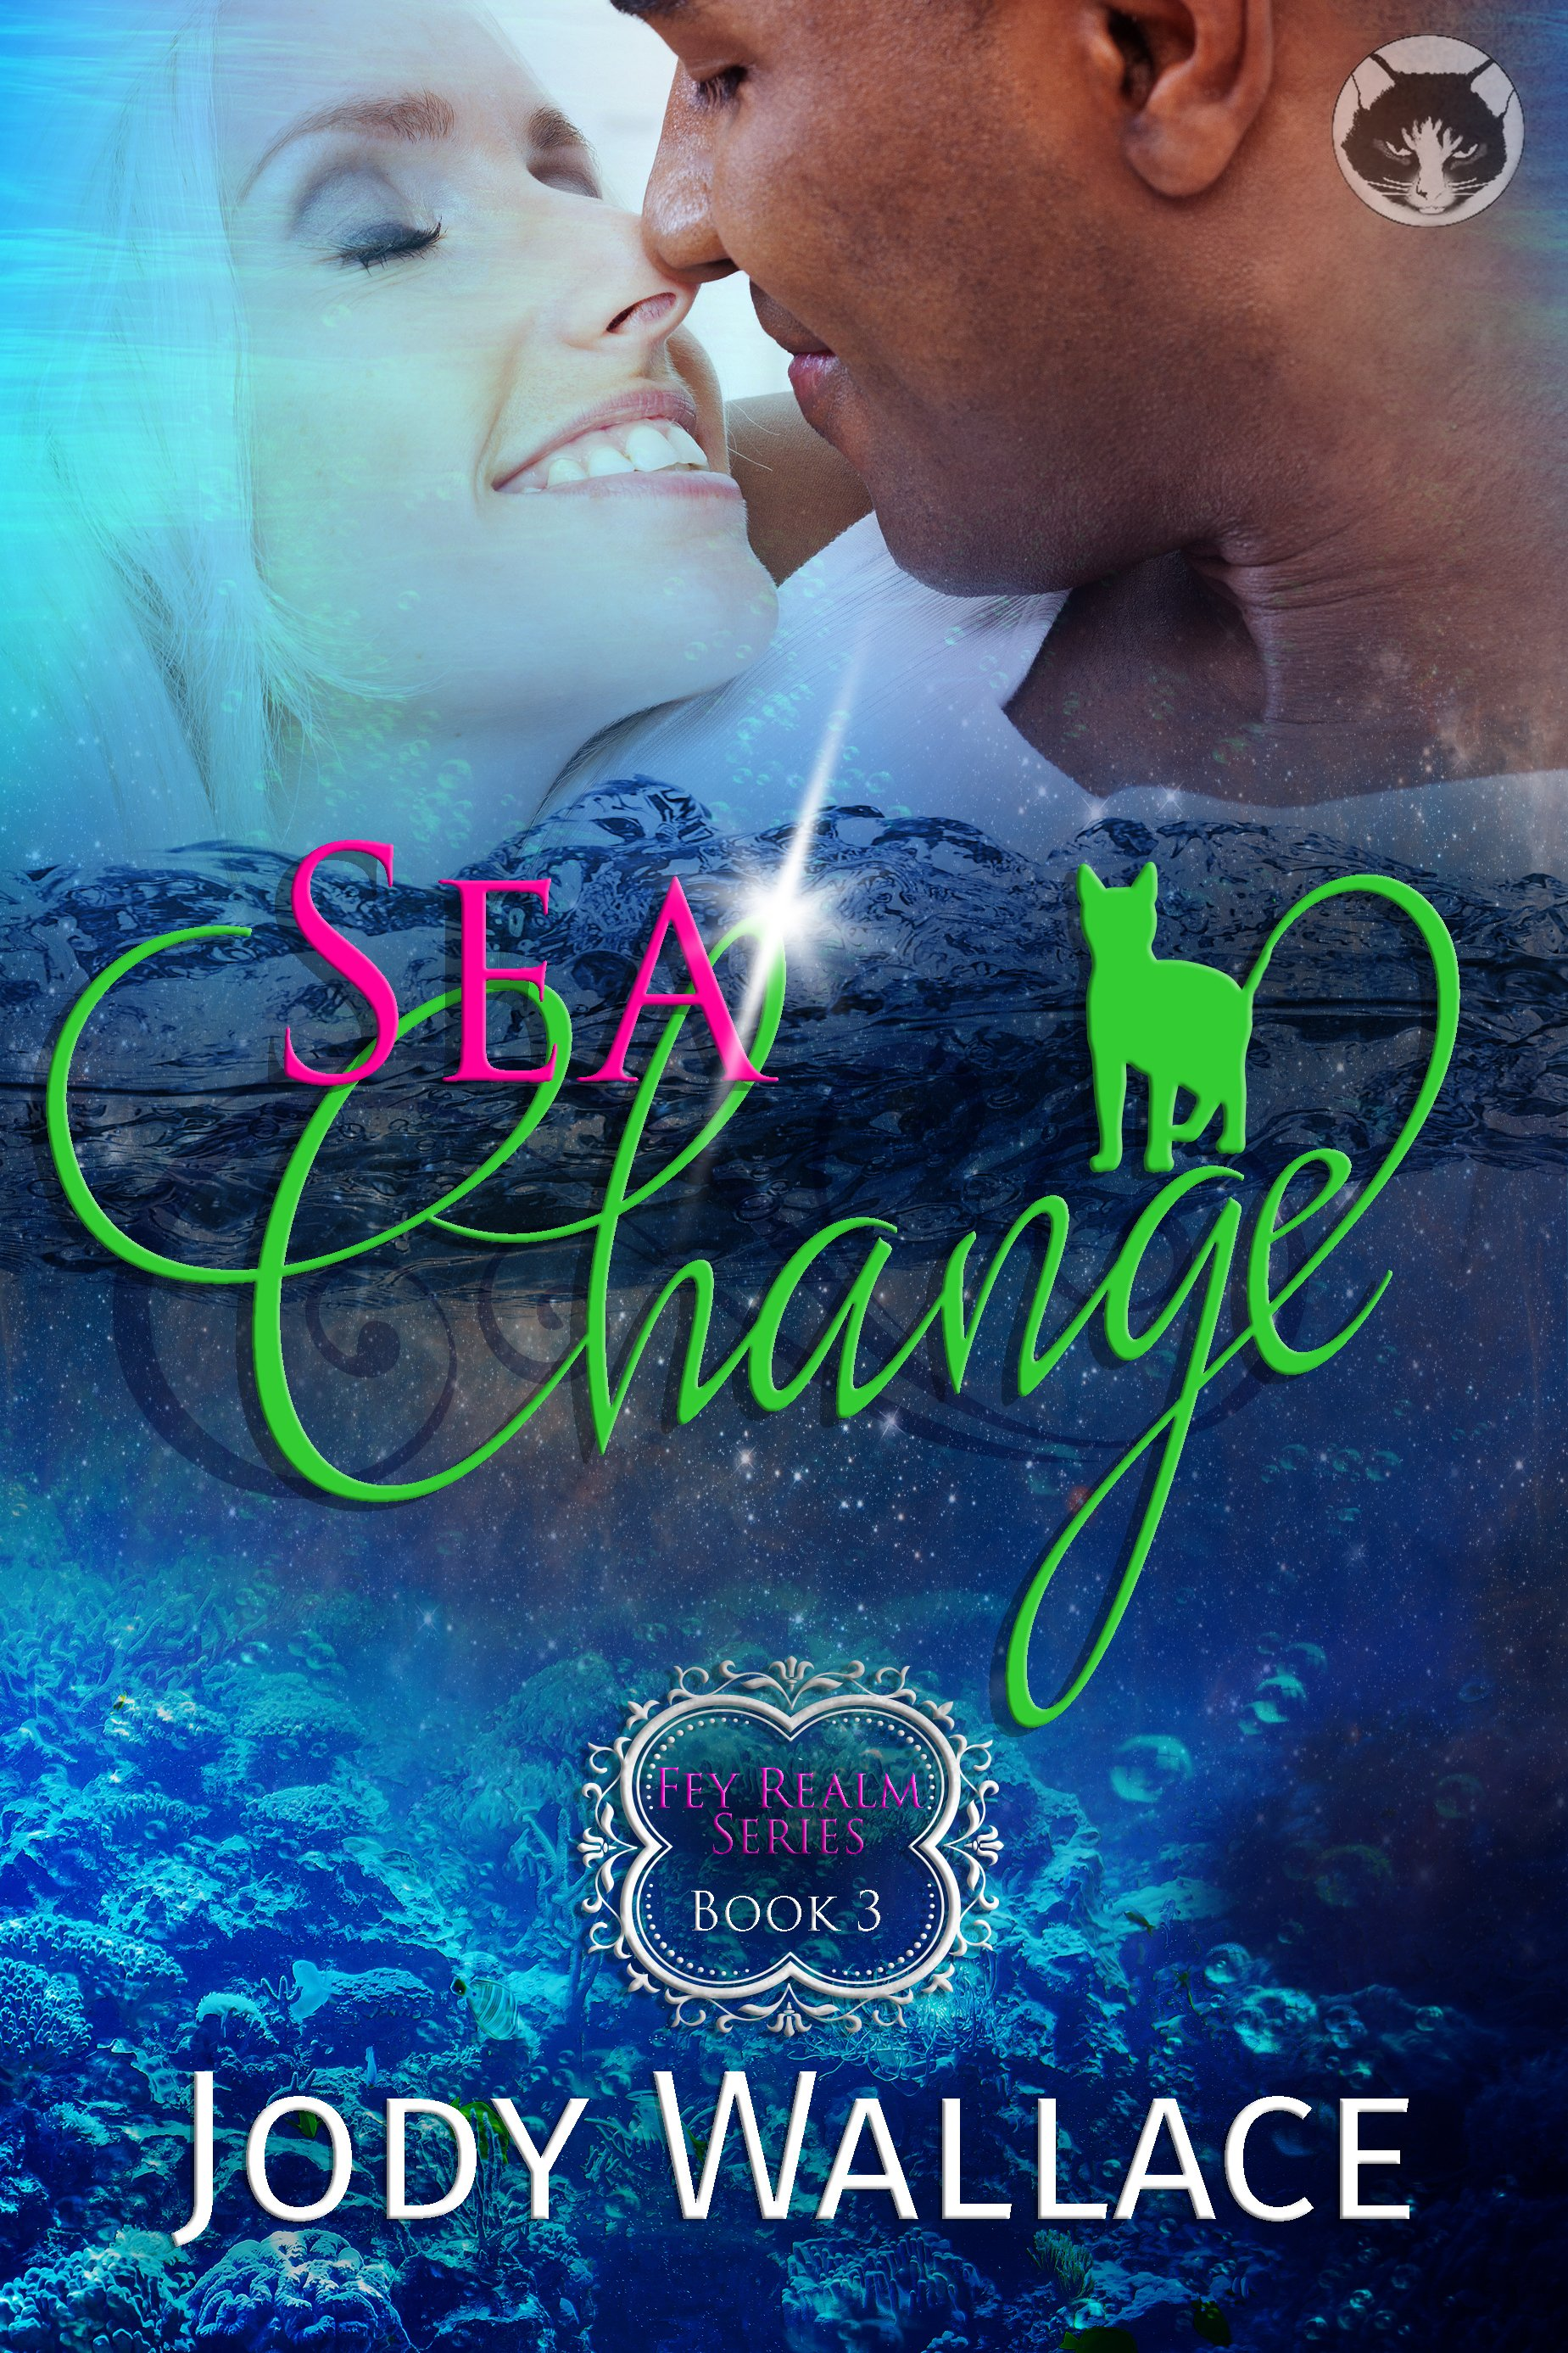 the cover for sea change by jody wallace